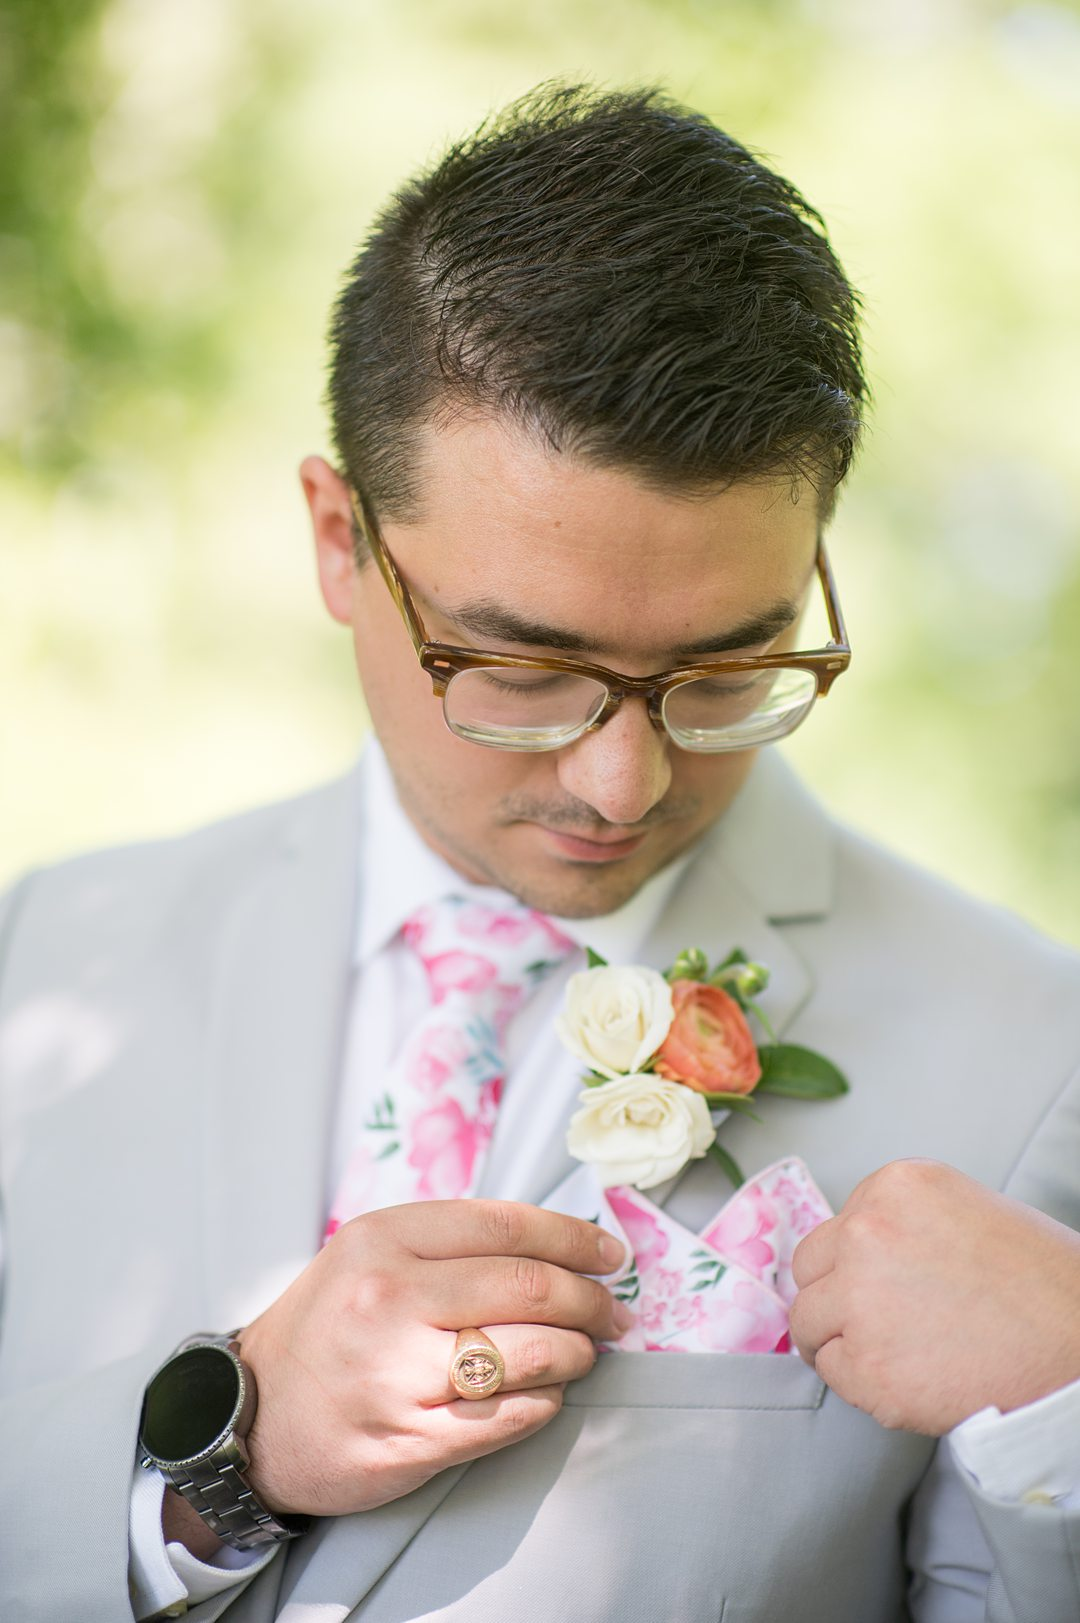 Groom in a grey suit with a pink floral tie and pocket square for a small wedding in Charlottesville, VA during COVID. Photos by Mikkel Paige Photography.